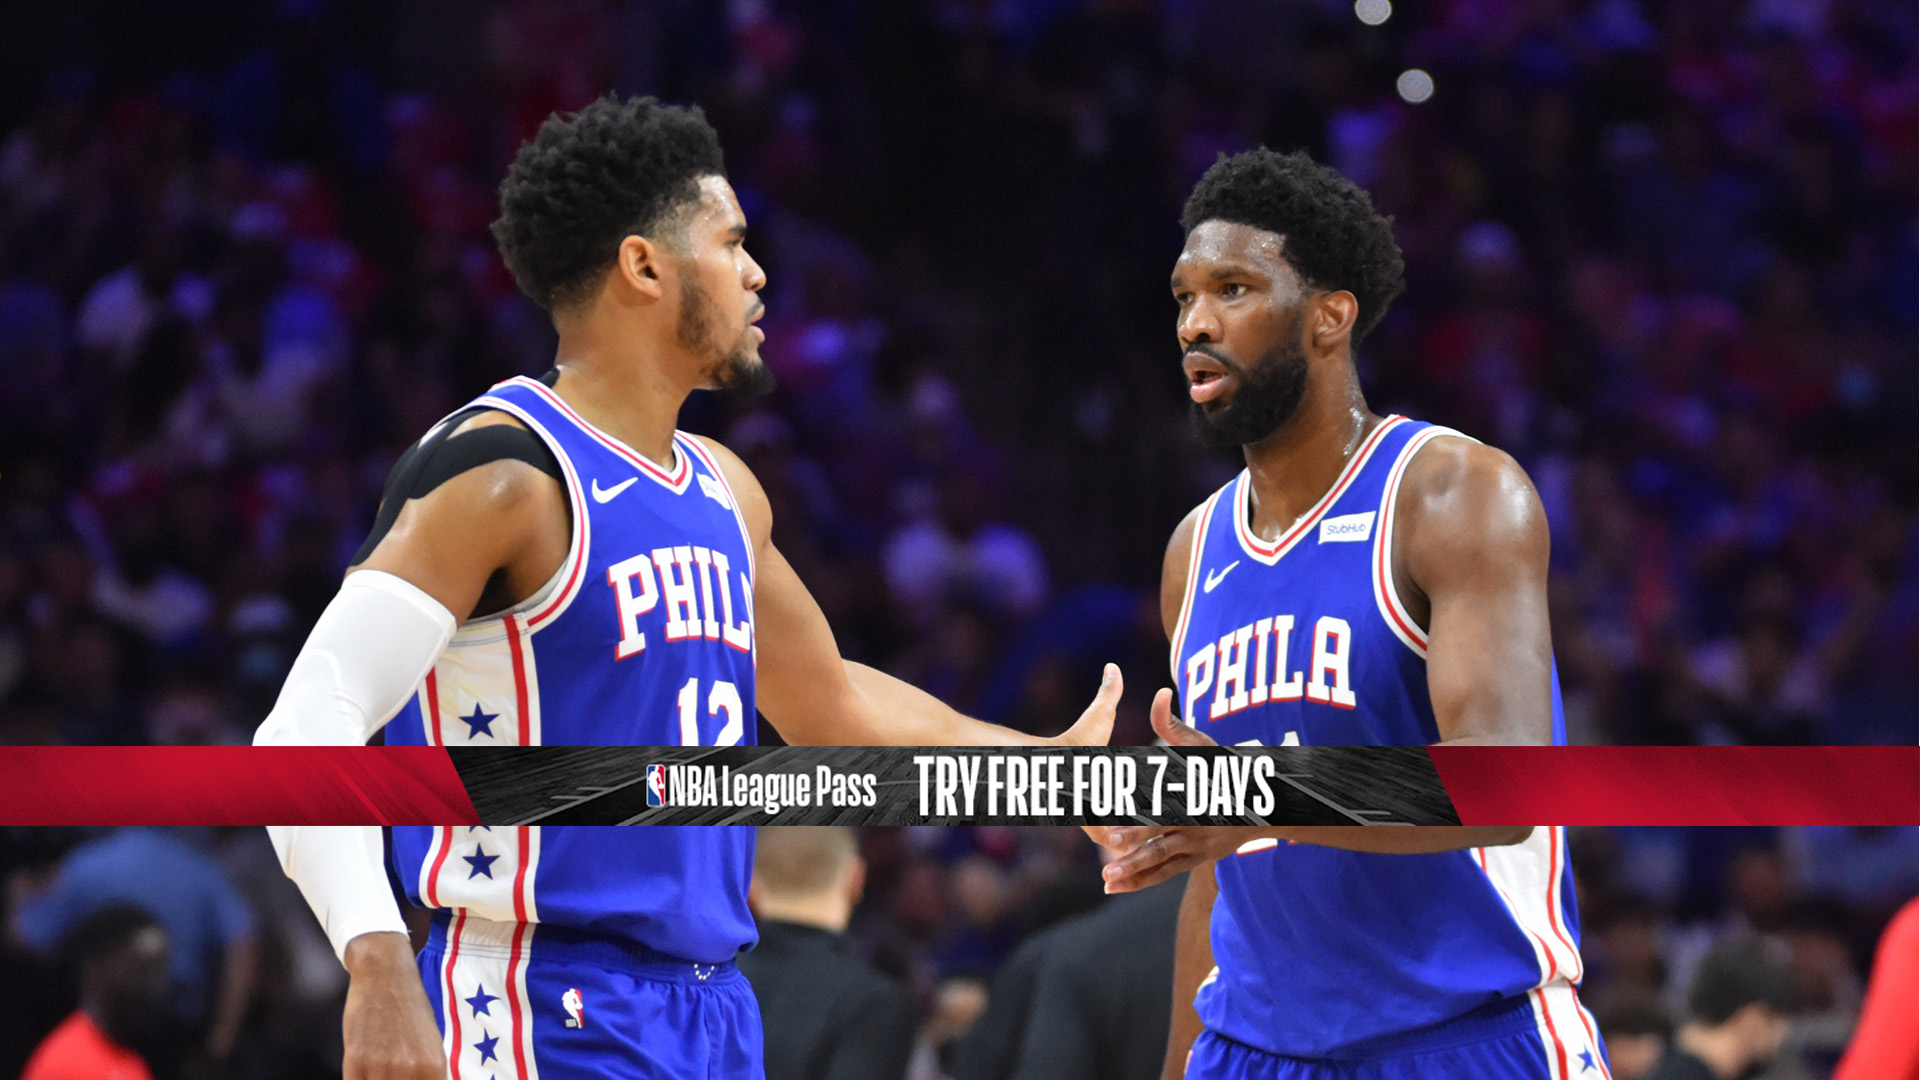 Embiid-led 76ers get season rolling against Pelicans